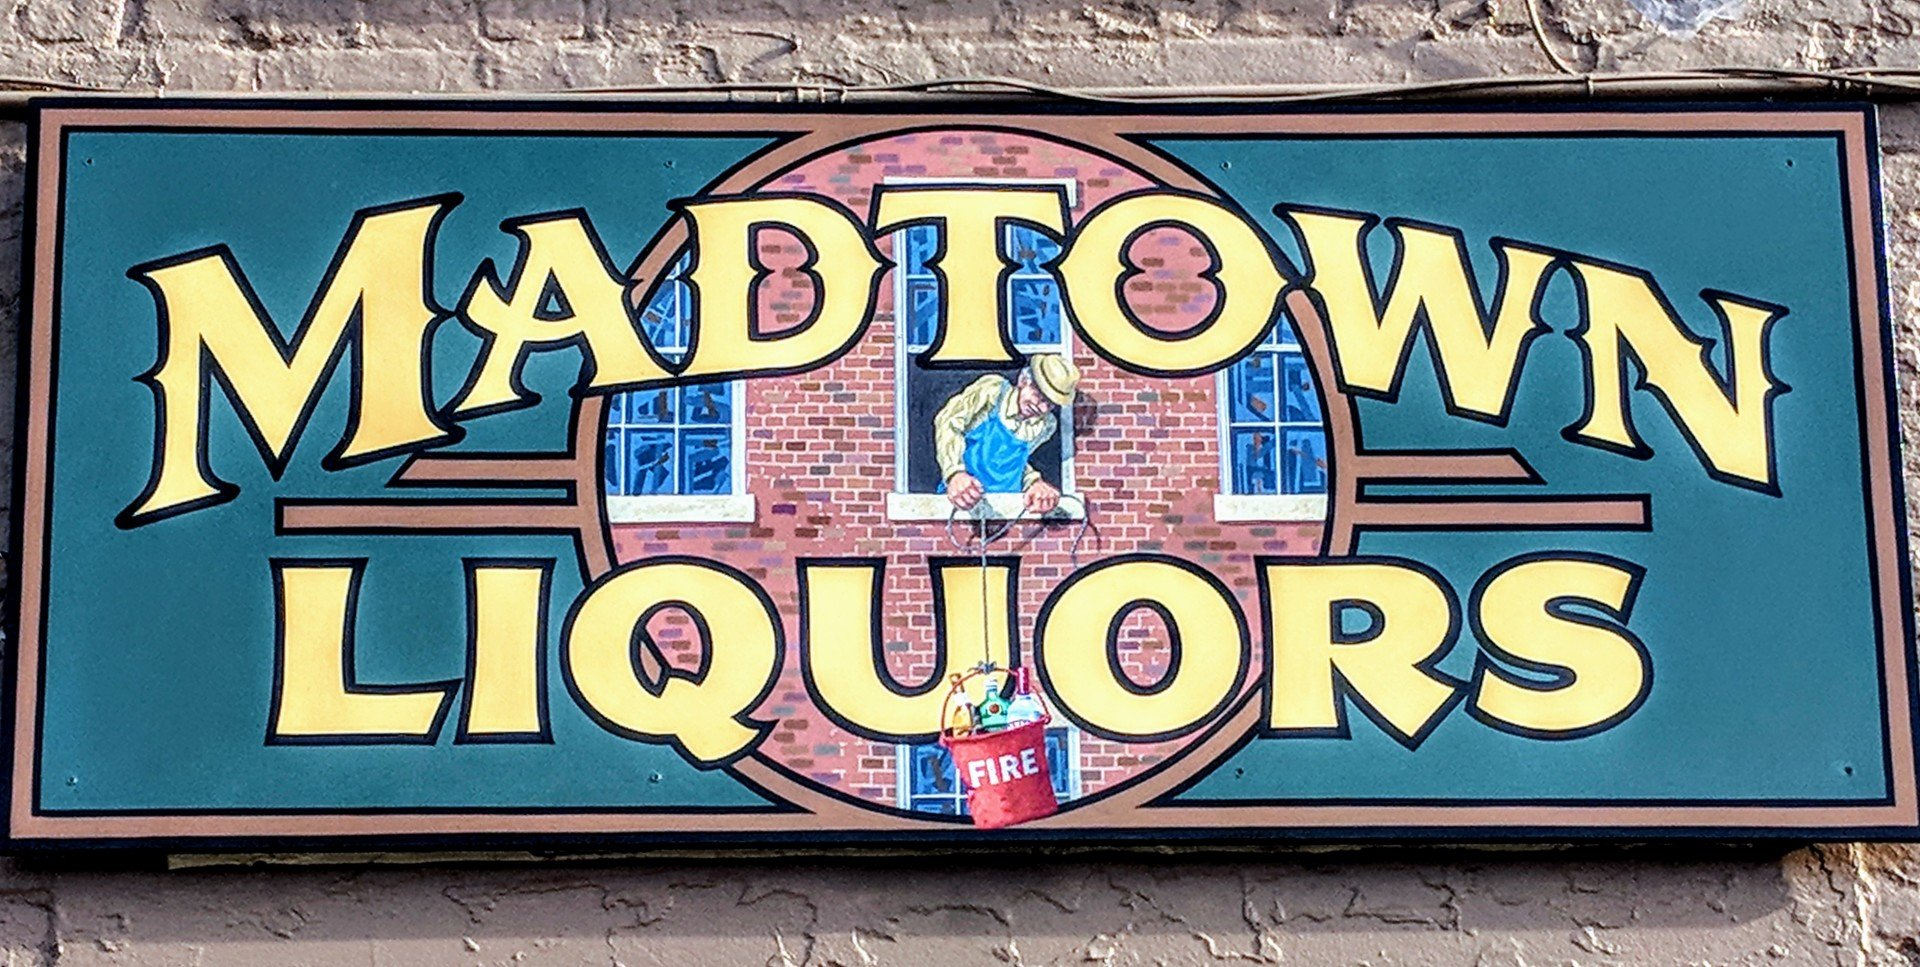 Madison's-Best-Liquor-Wine-Beer-2018-2019-Madtown-Liquors